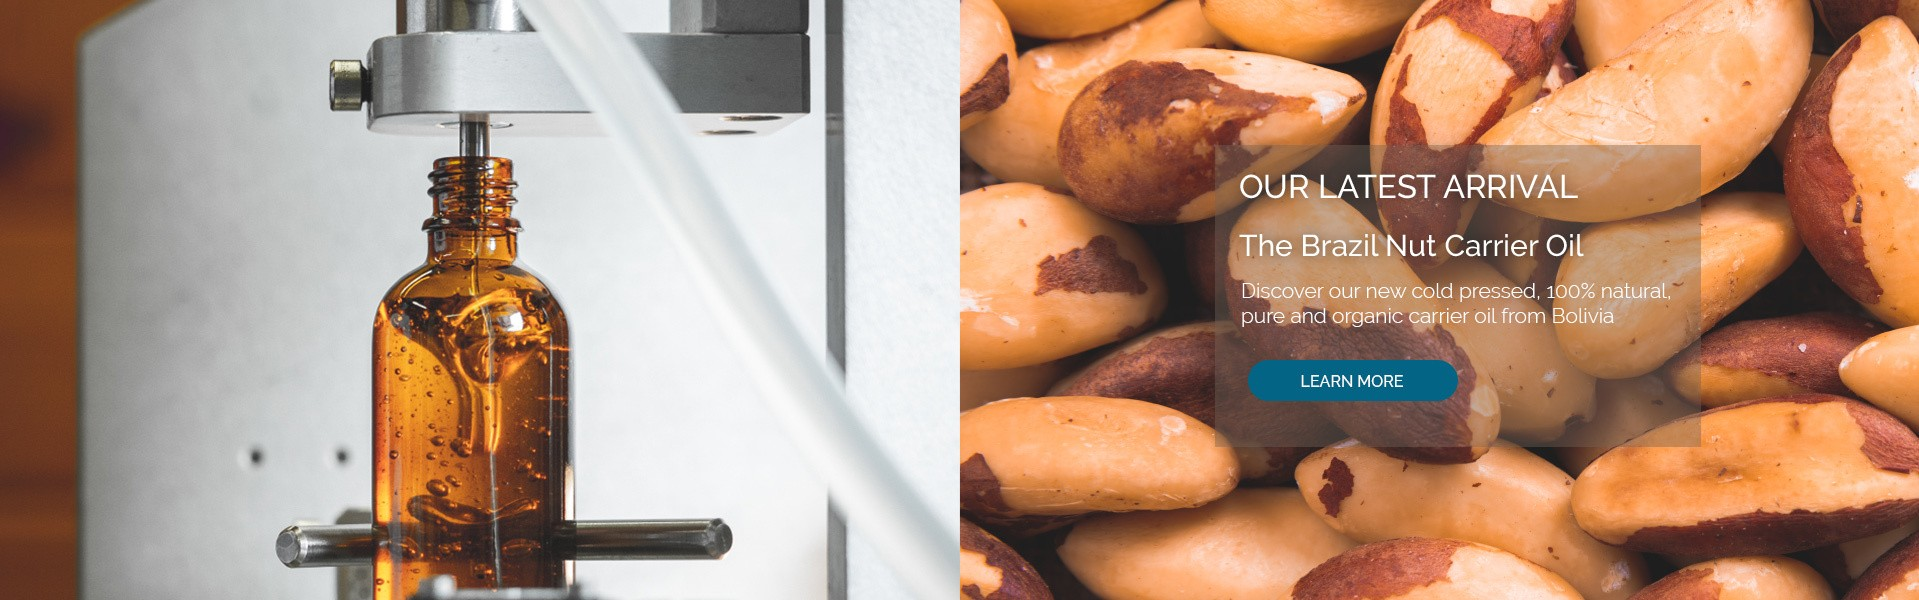 Brazil Nut Carrier Oil. Discover our cold pressed, organic, 100% pure and natural oil from Bolivia.